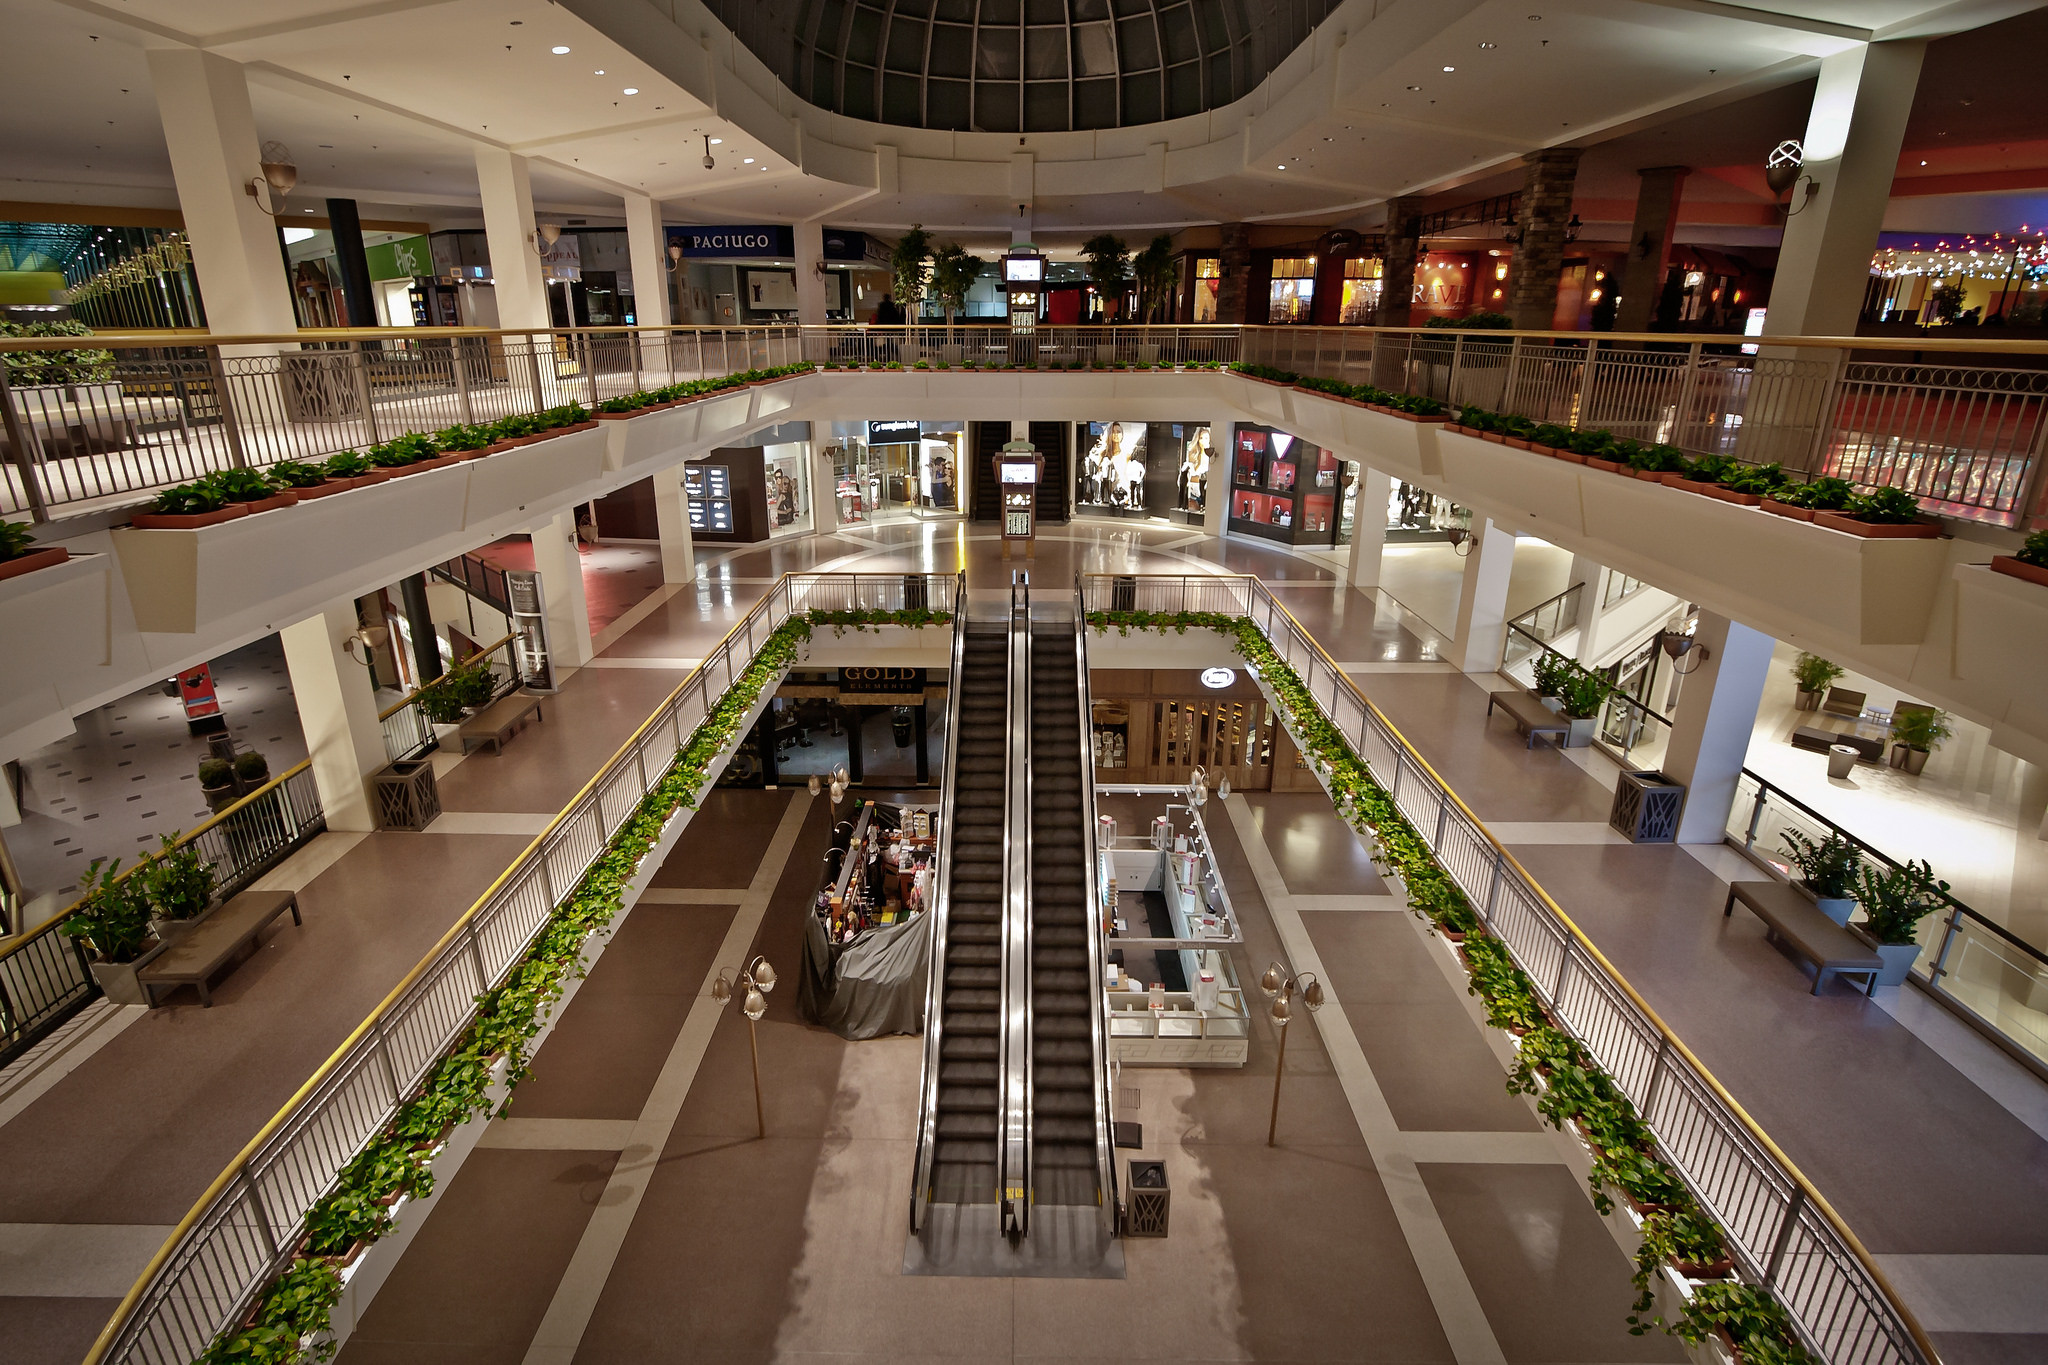 Pictures of the mall